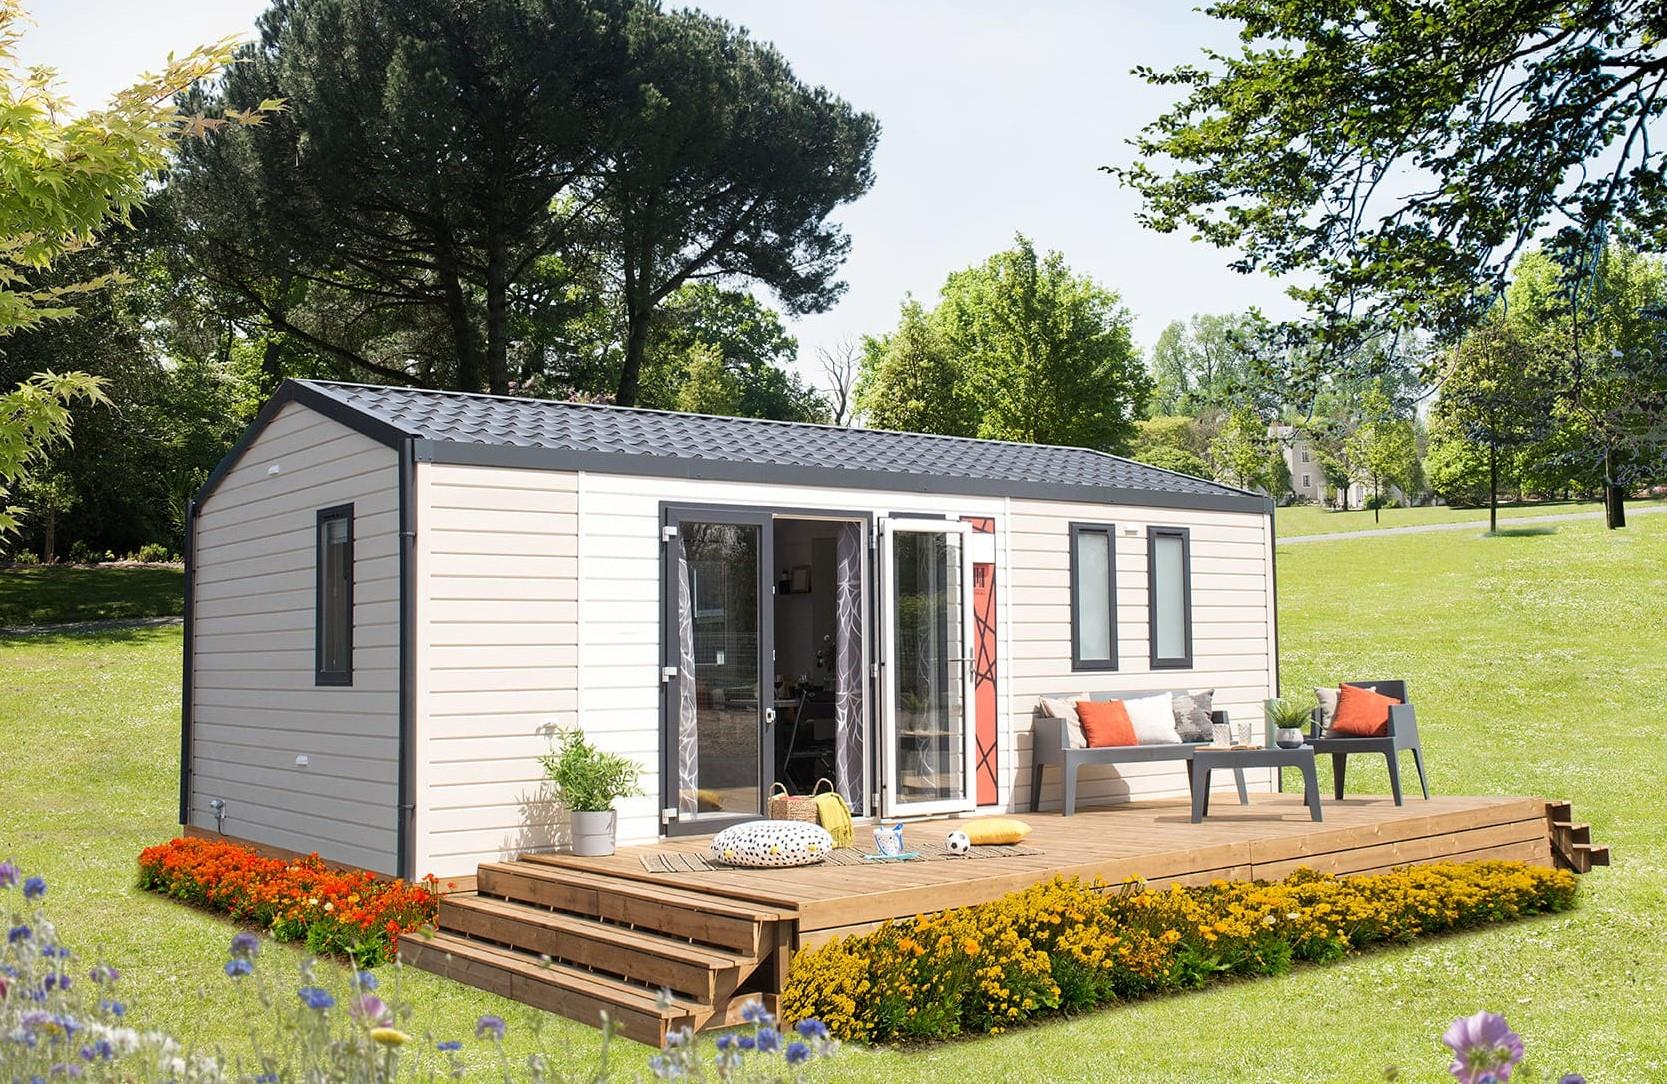 Mobile home Bahia 2 bedrooms / Terrace and TV